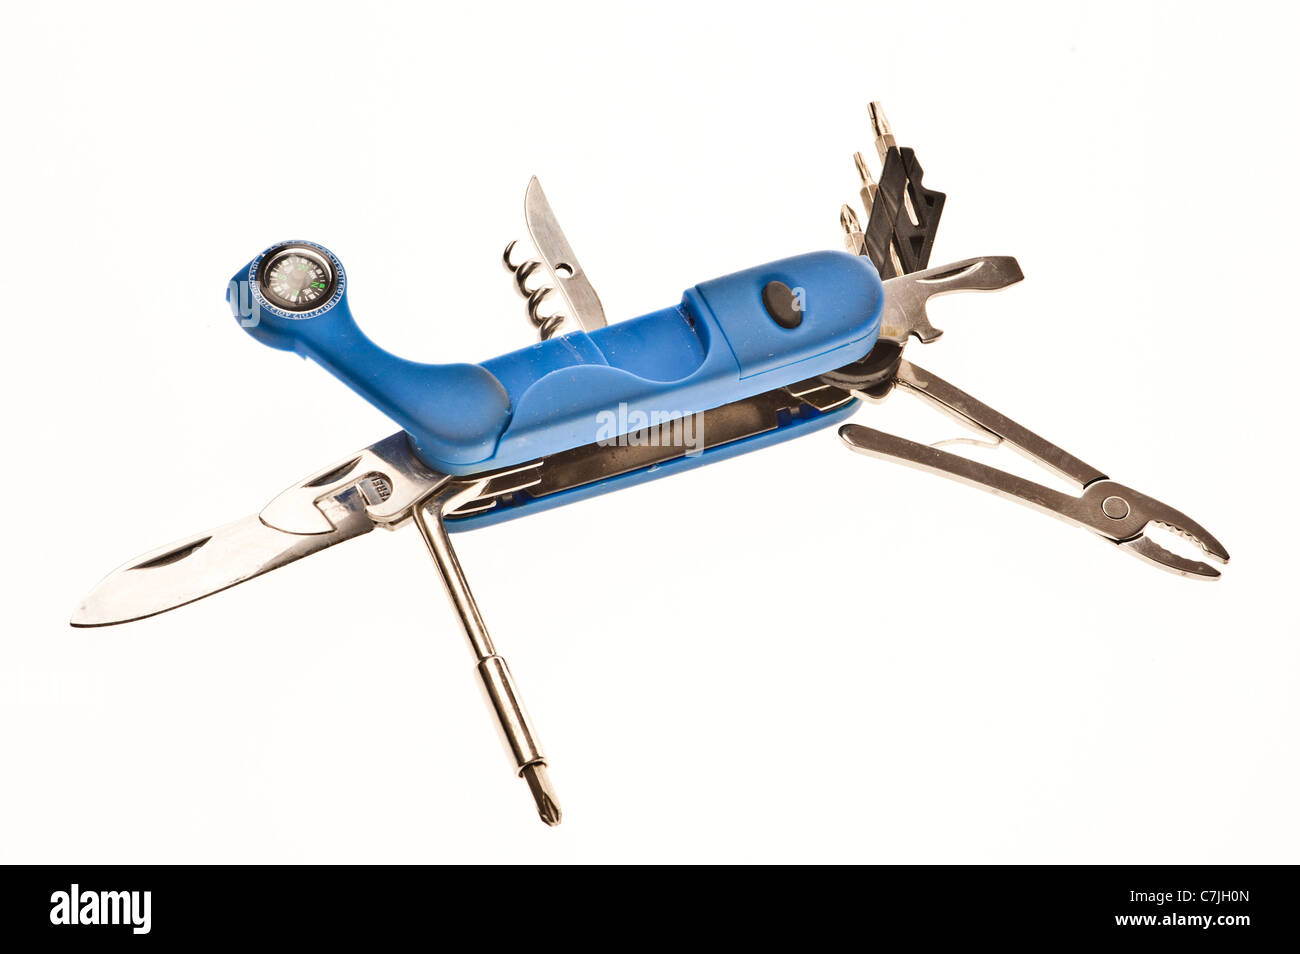 An opened multi-tool penknife on a white backlit background - Stock Image